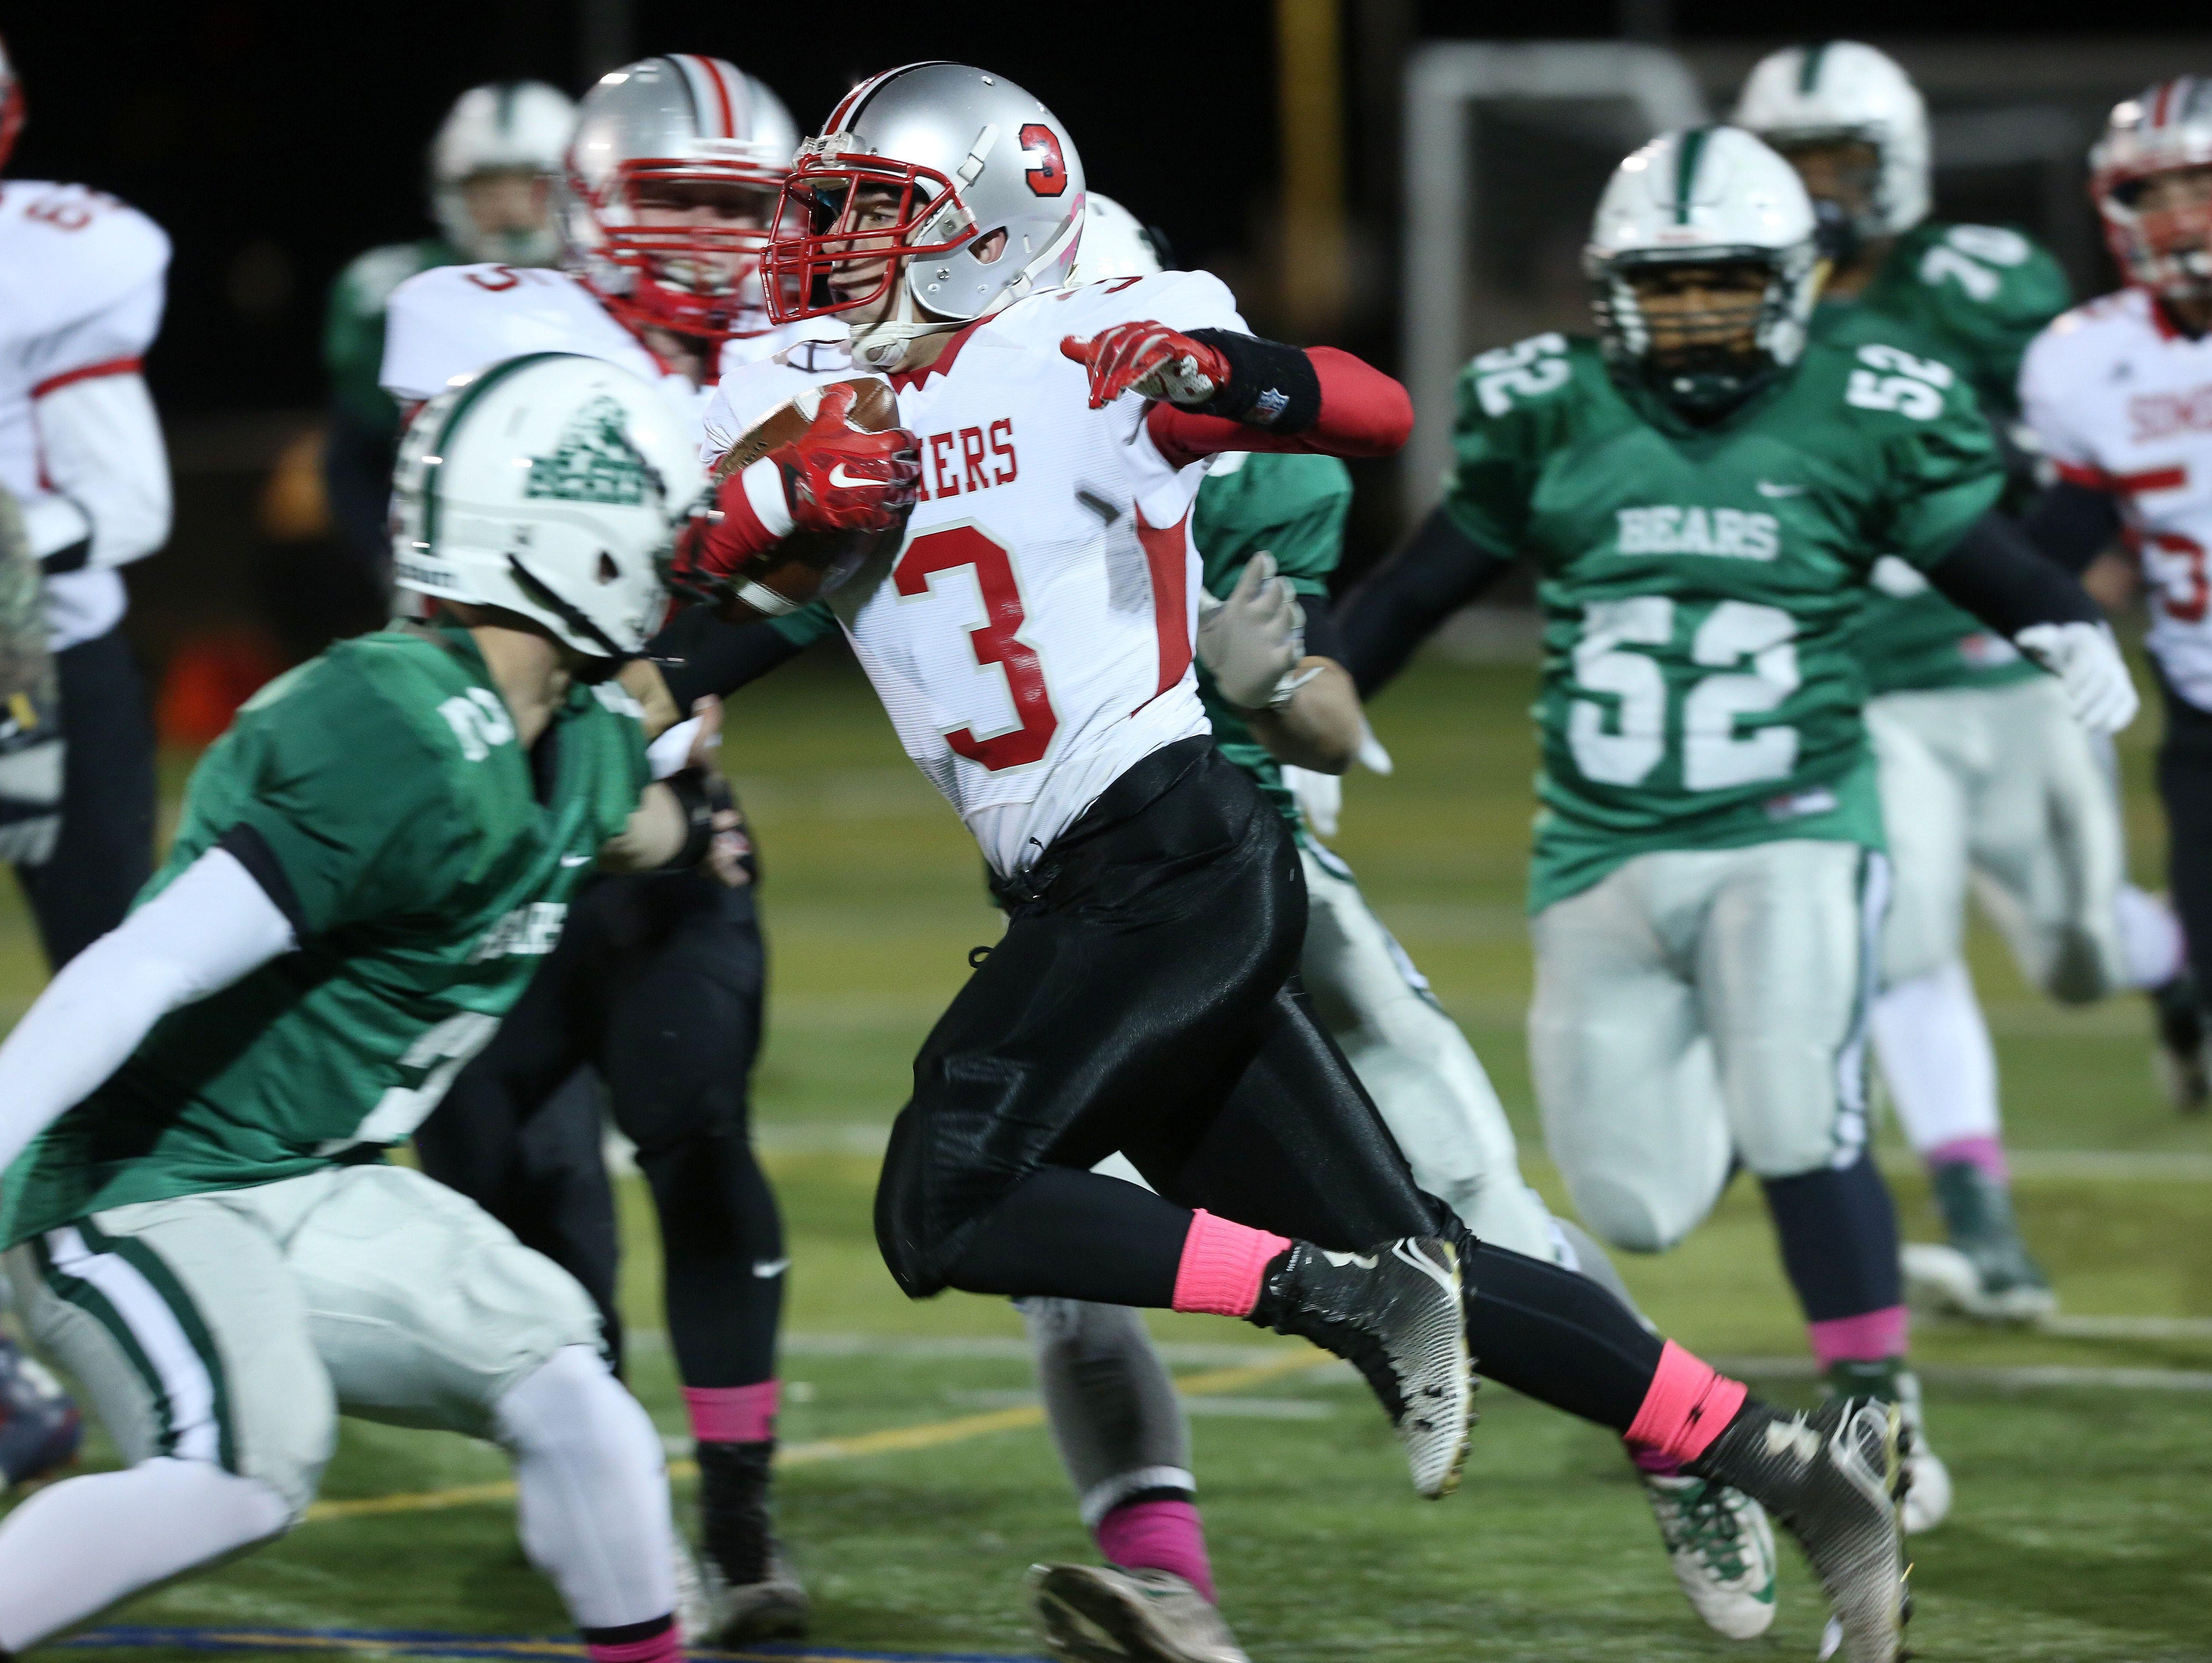 Somers' Matthew Pires (3) runs for a 66-yard touchdown on the first play from scrimmage against Brewster during the Section 1 Class A semifinals at Brewster High School Oct. 28, 2016.